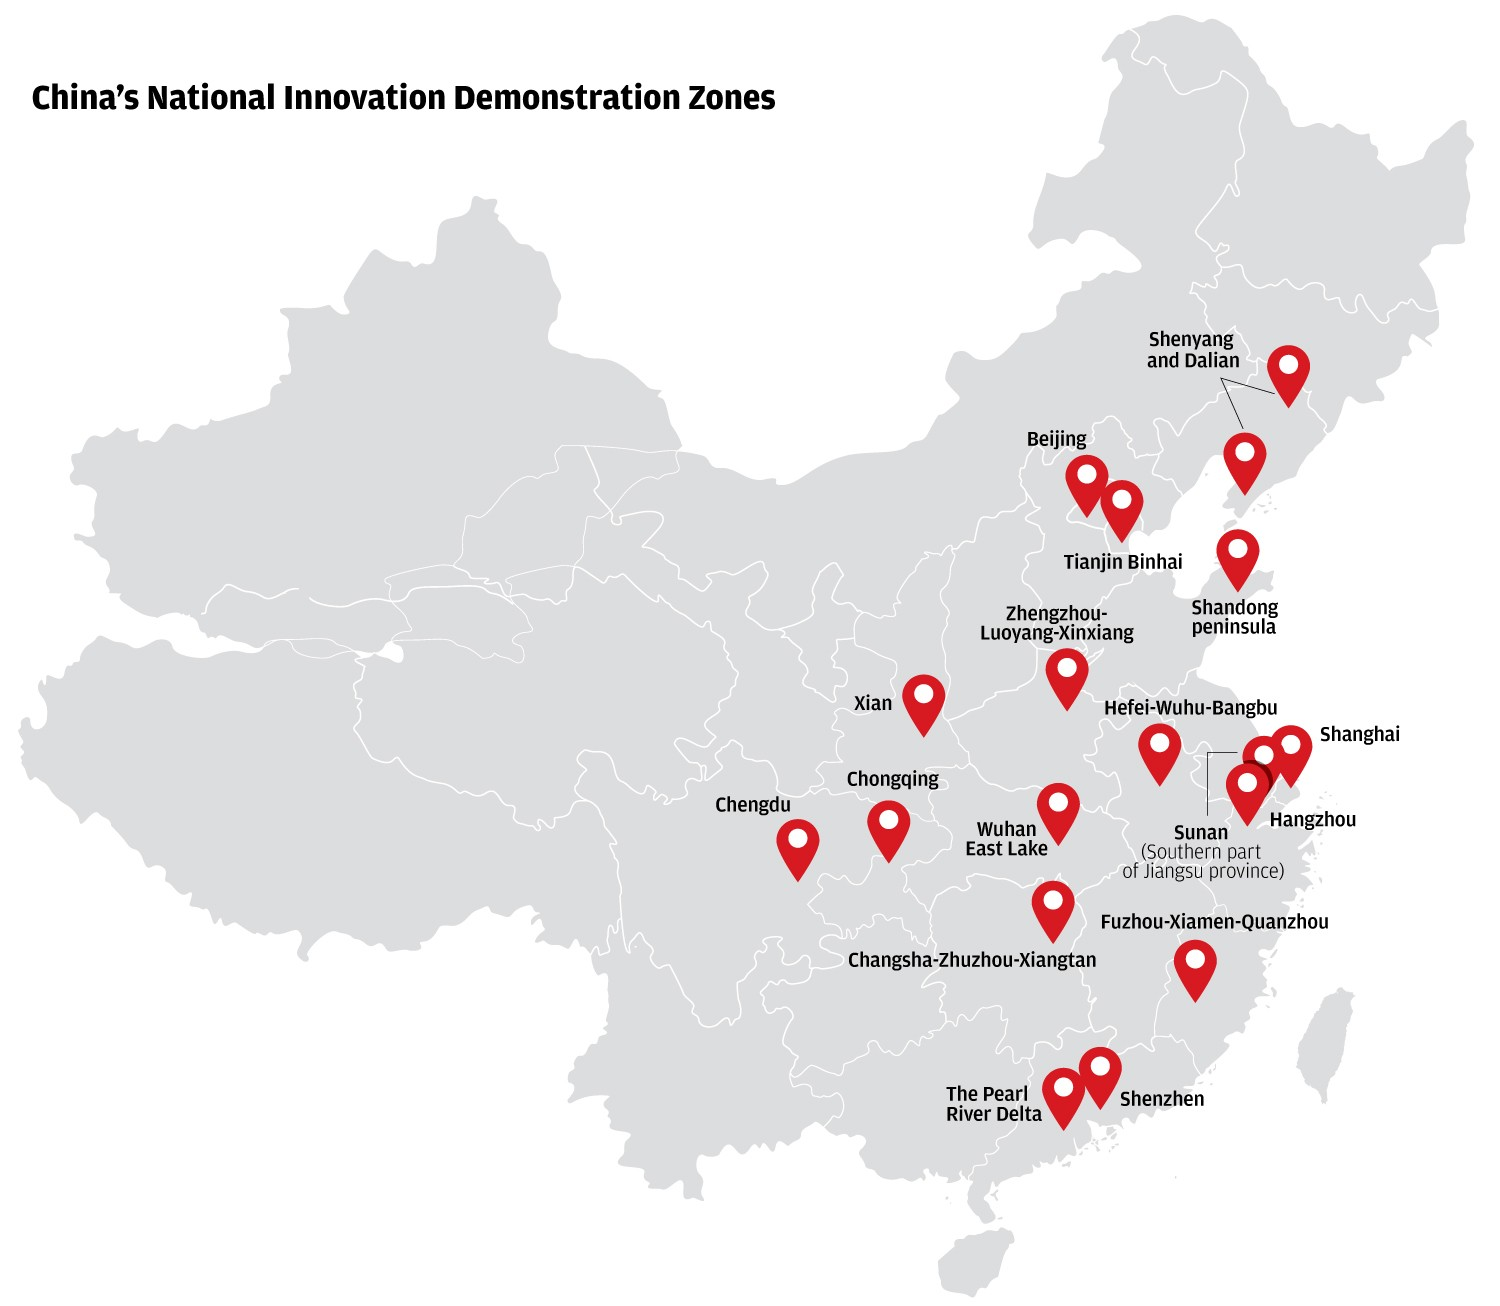 E Commerce Site Map: Where Is China's Silicon Valley?